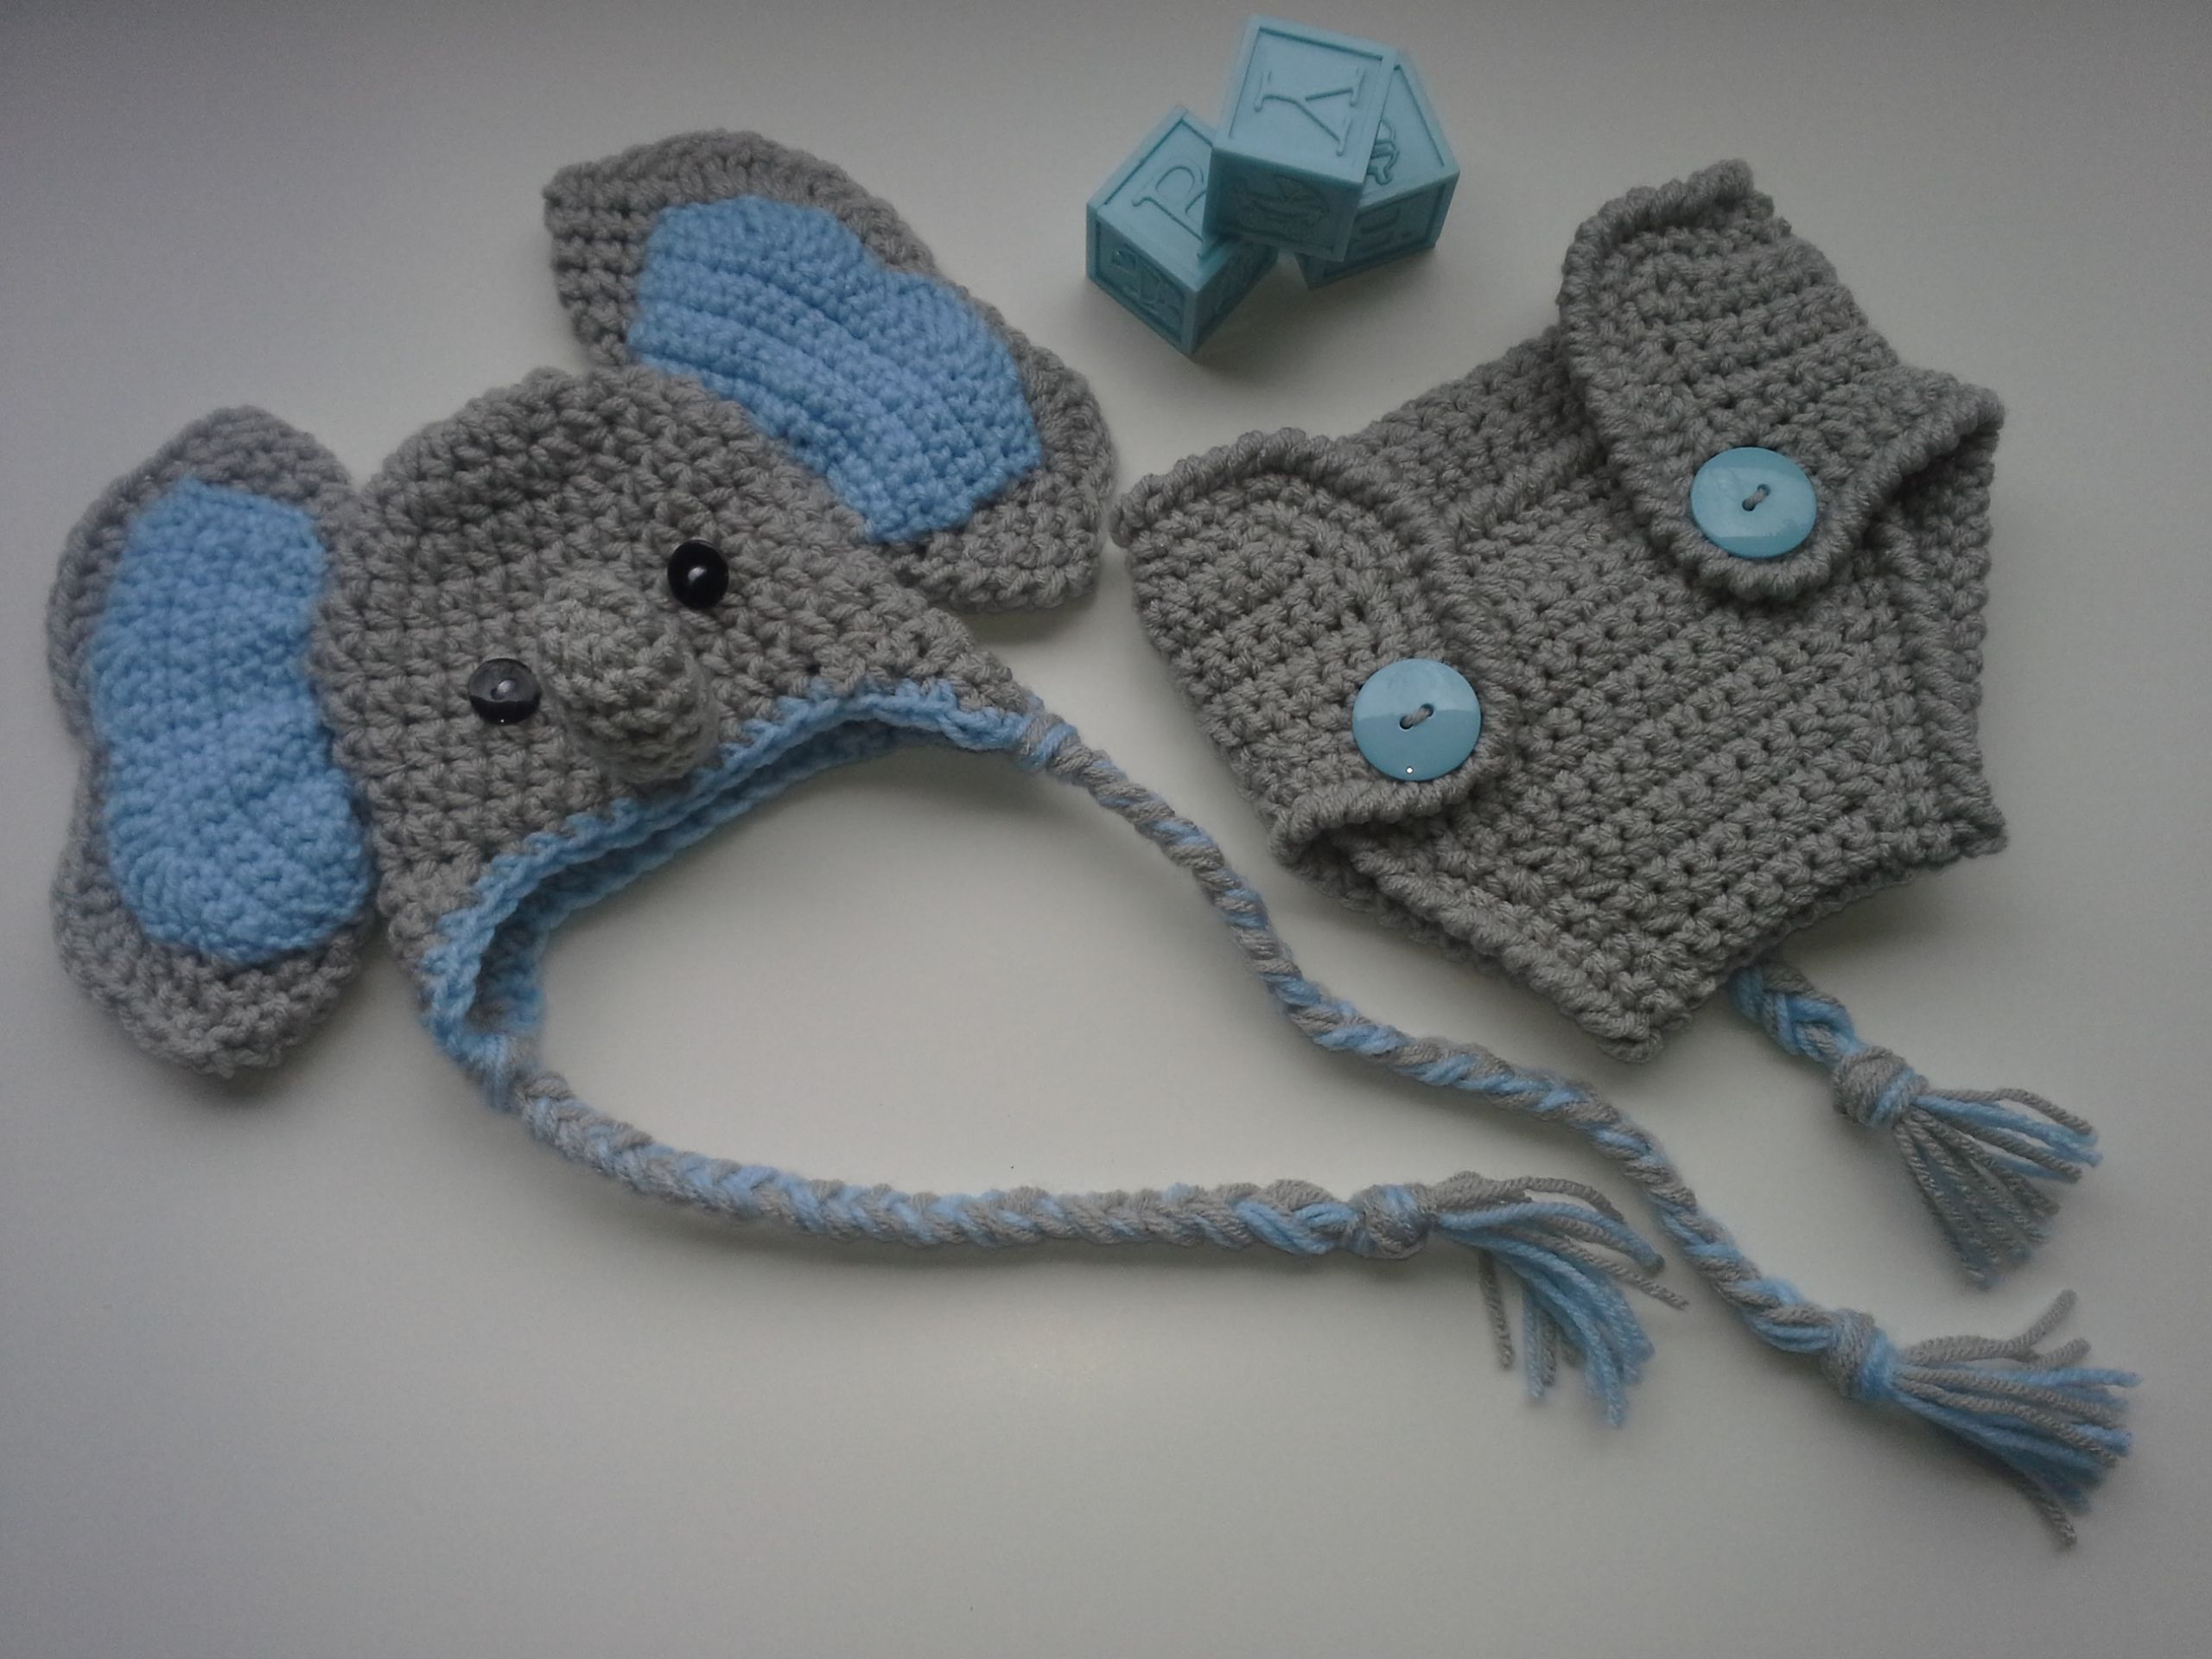 c8e8721f19d This is a handmade Elephant hat with diaper cover. There are 2 buttons on  the